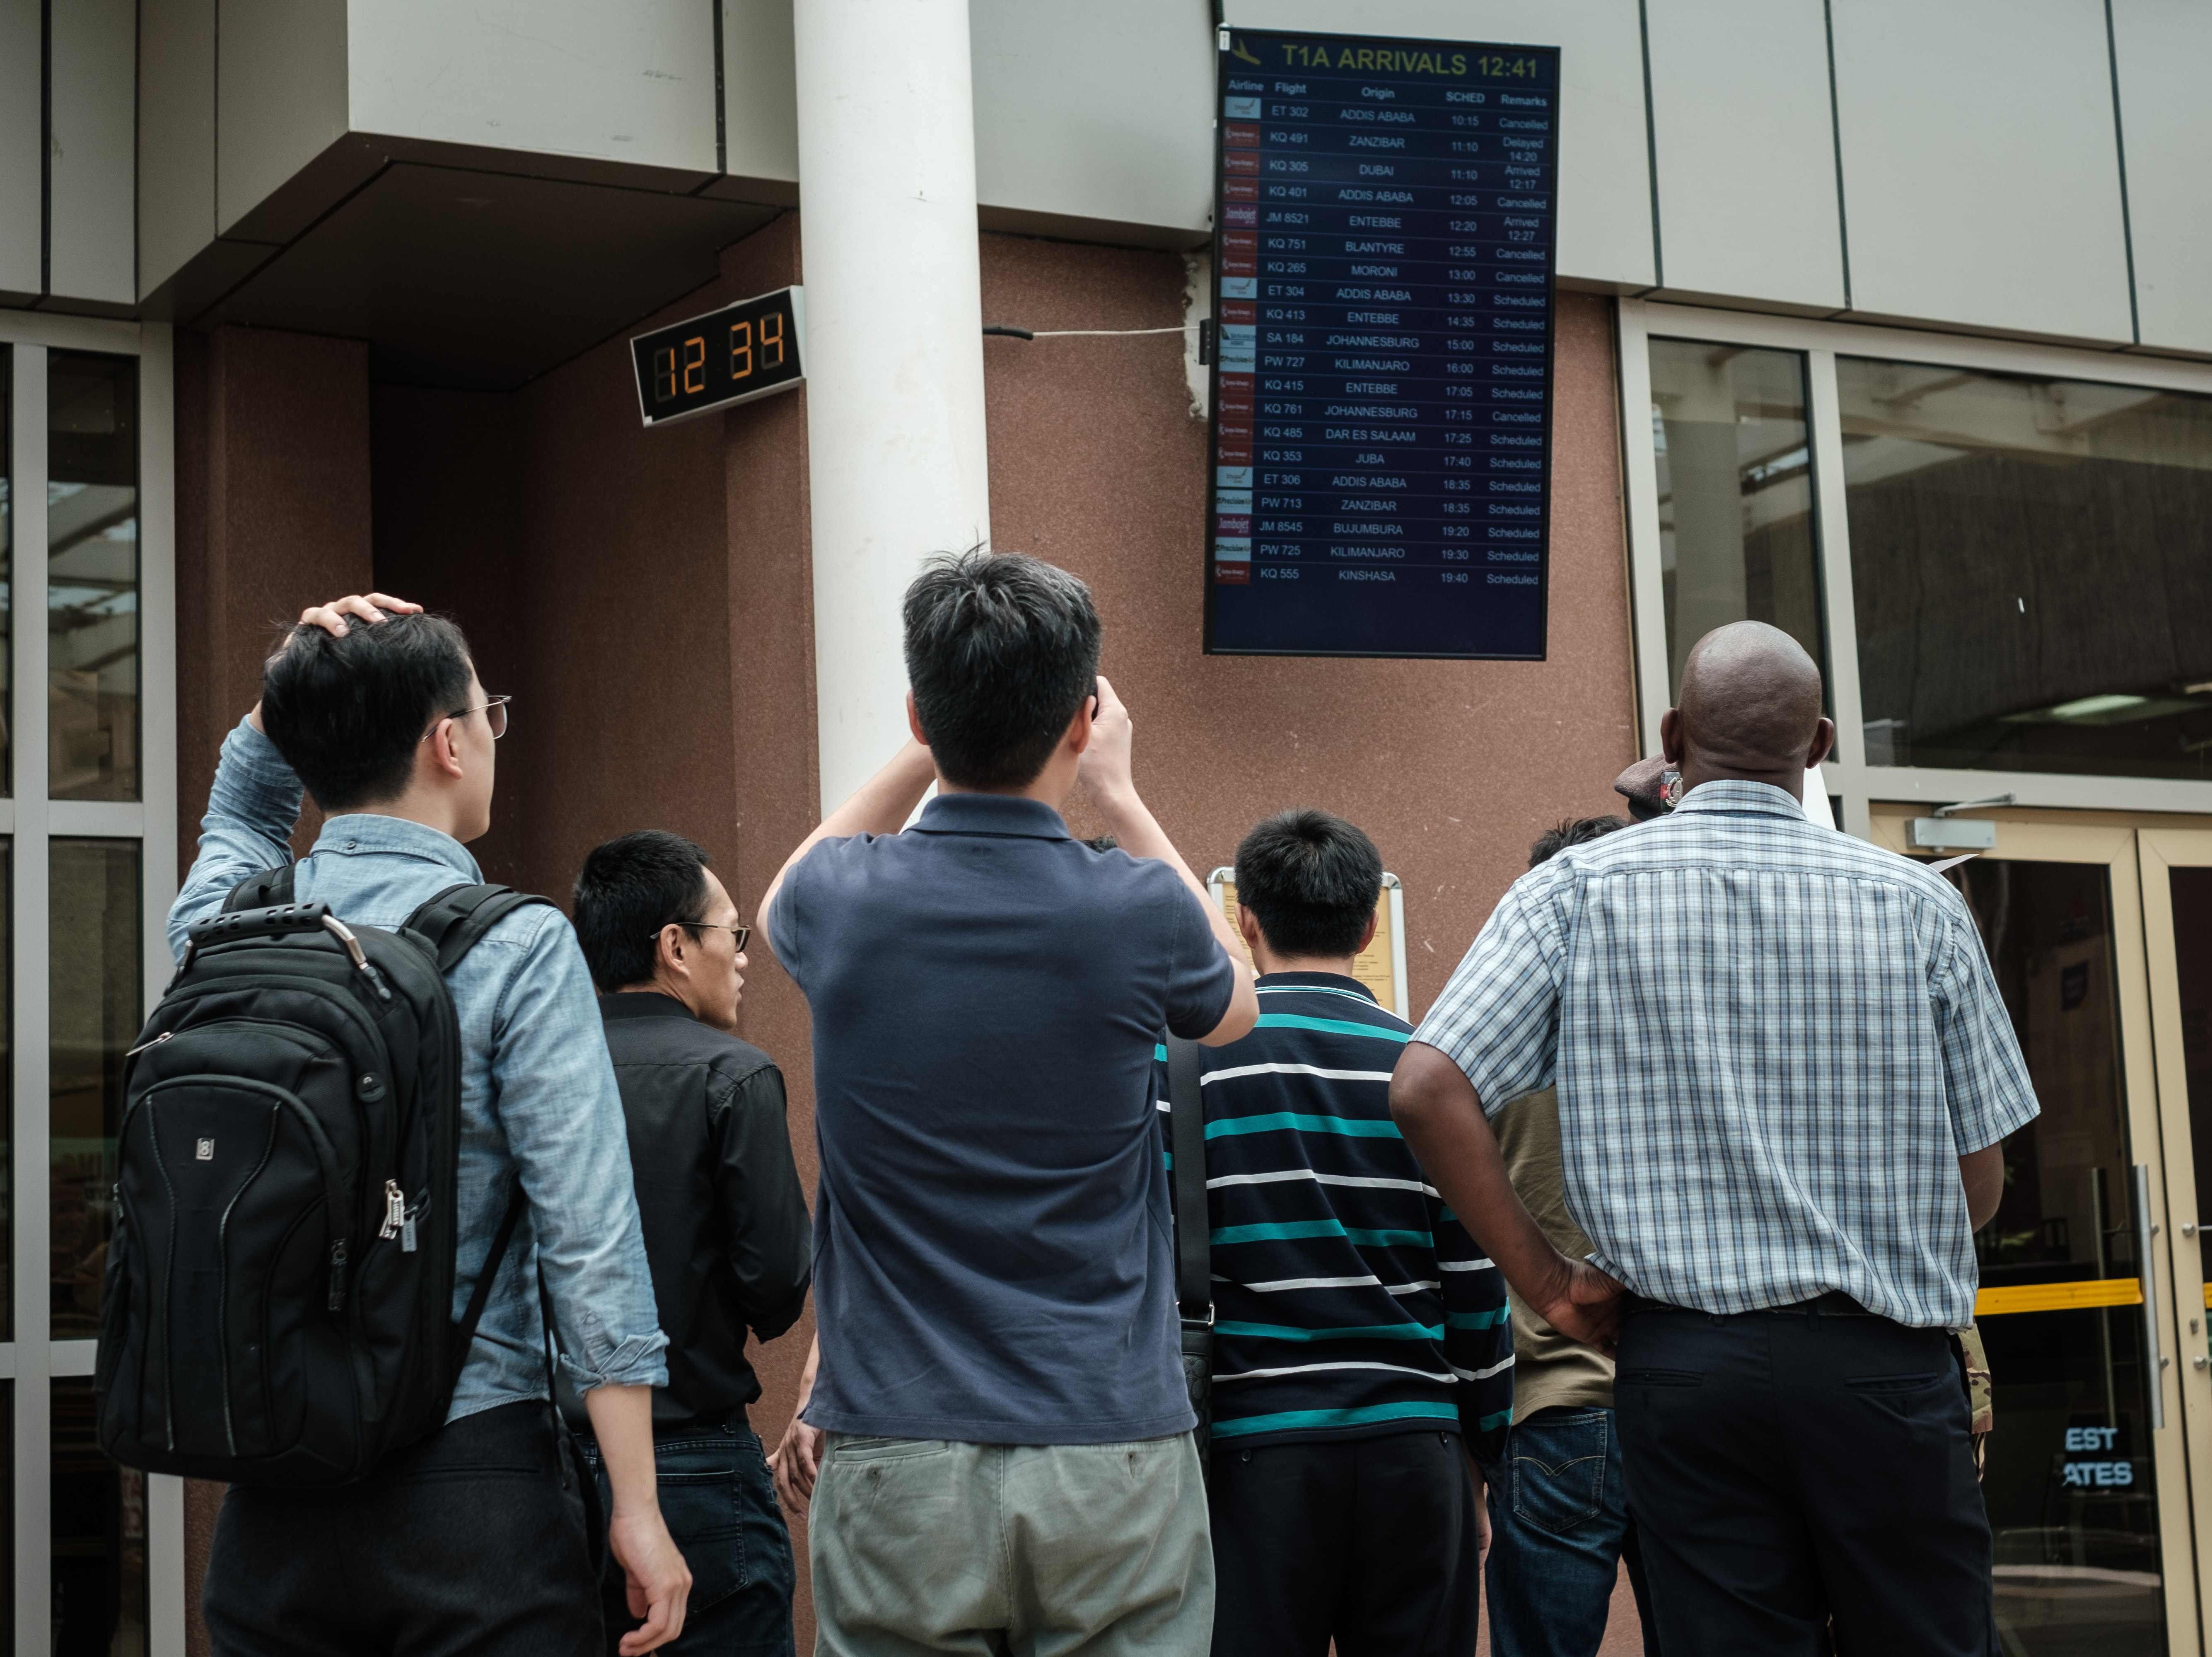 People look at the arrival flight schedule for their colleagues who were allegedly onboard the plane that crashed in Ethiopia while waiting at the Jomo Kenyatta International Airport in Nairobi, Kenya.